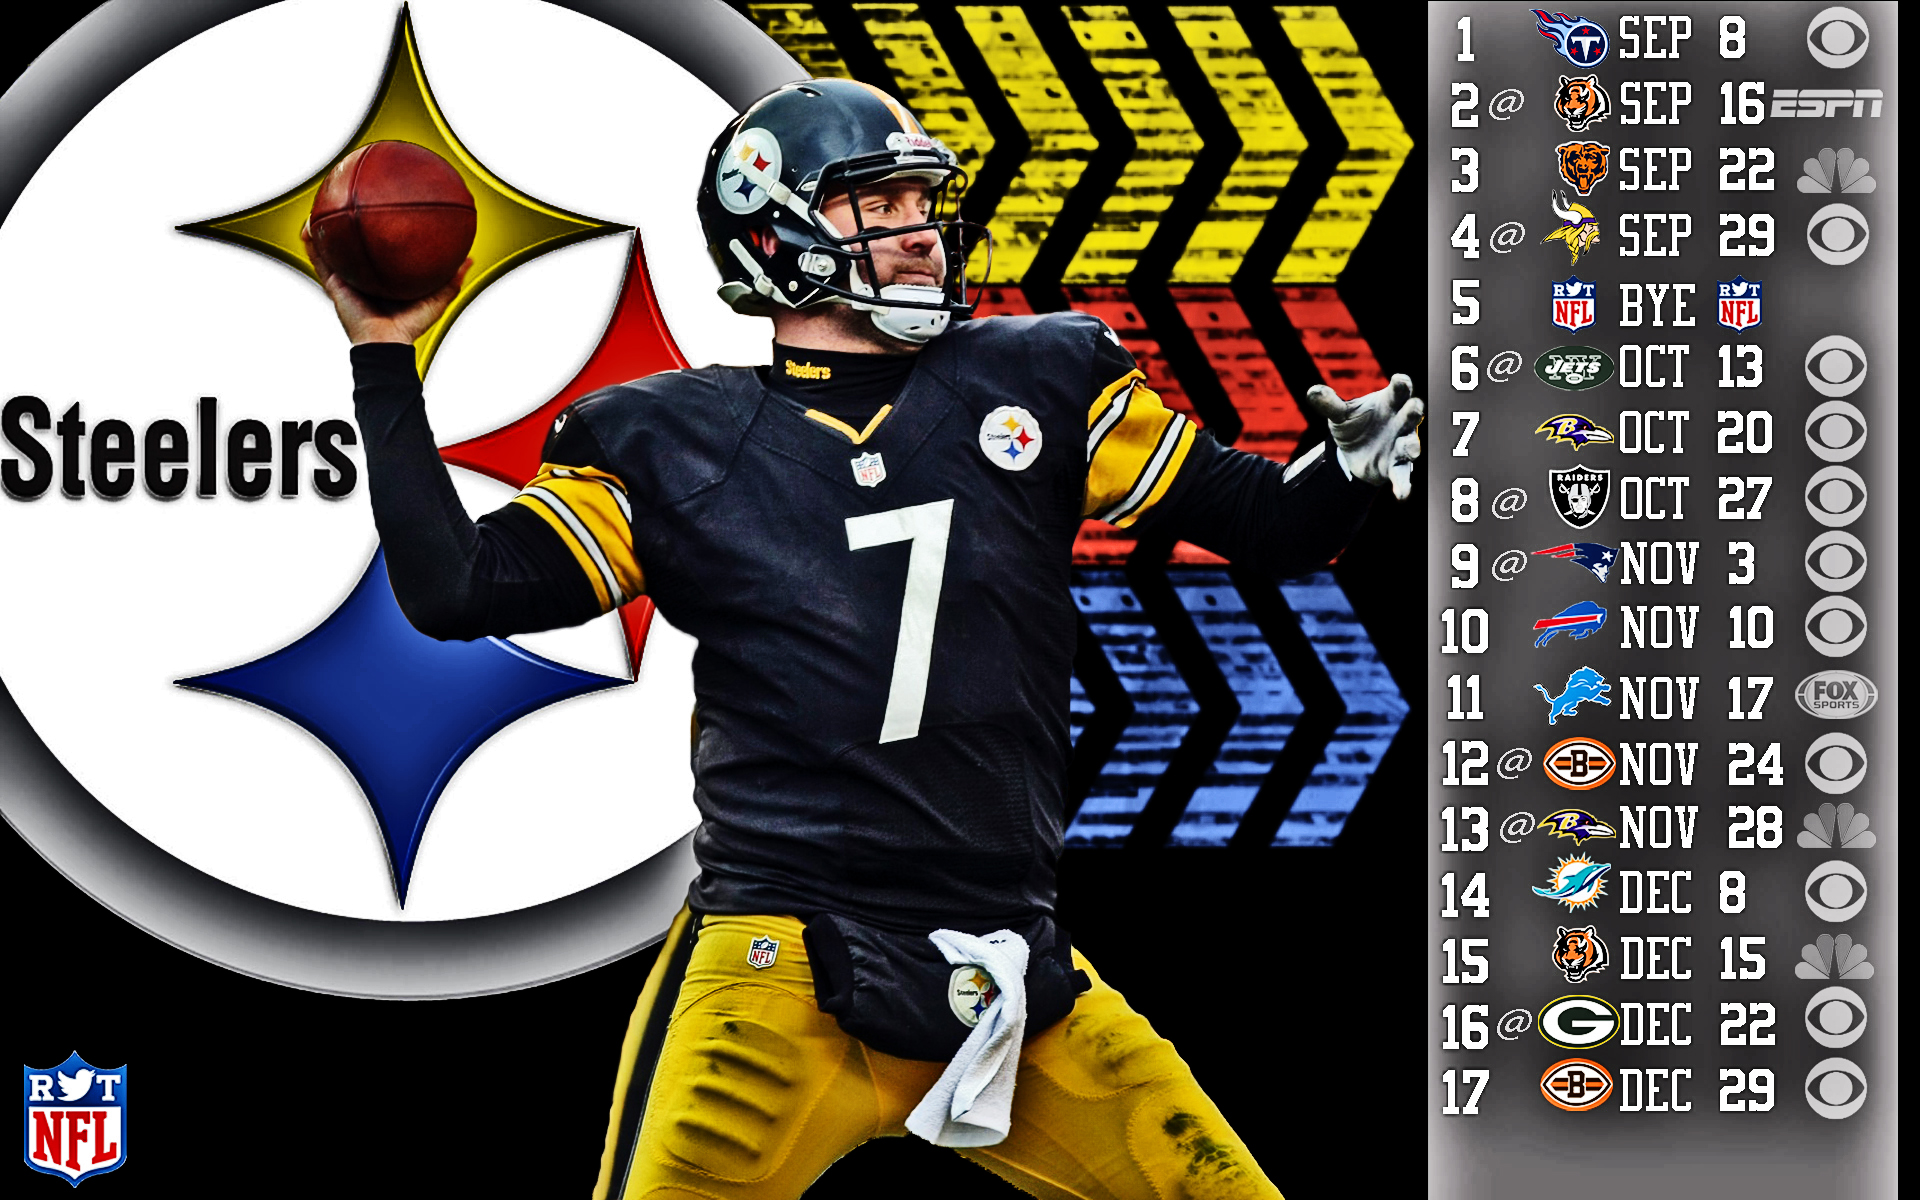 Pittsburgh Steelers 2014-2015 Schedule